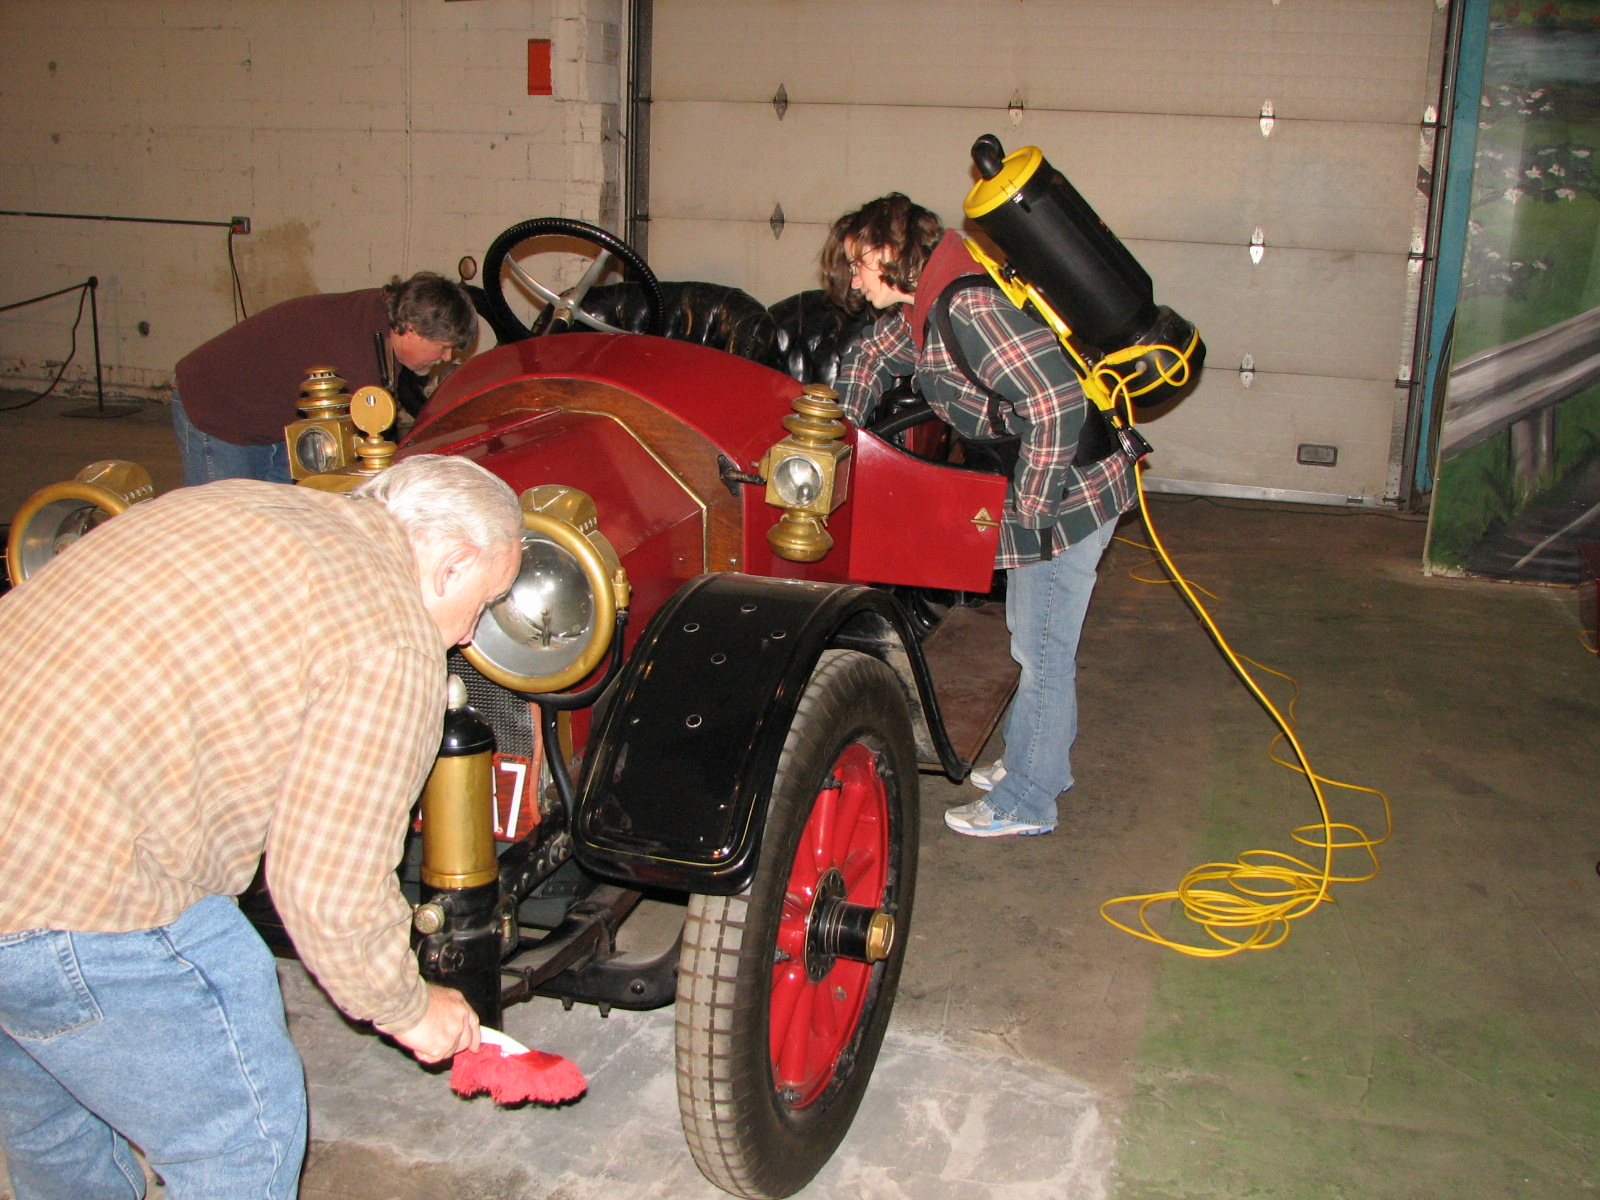 Welcome to the Boyertown Museum of Historic Vehicles